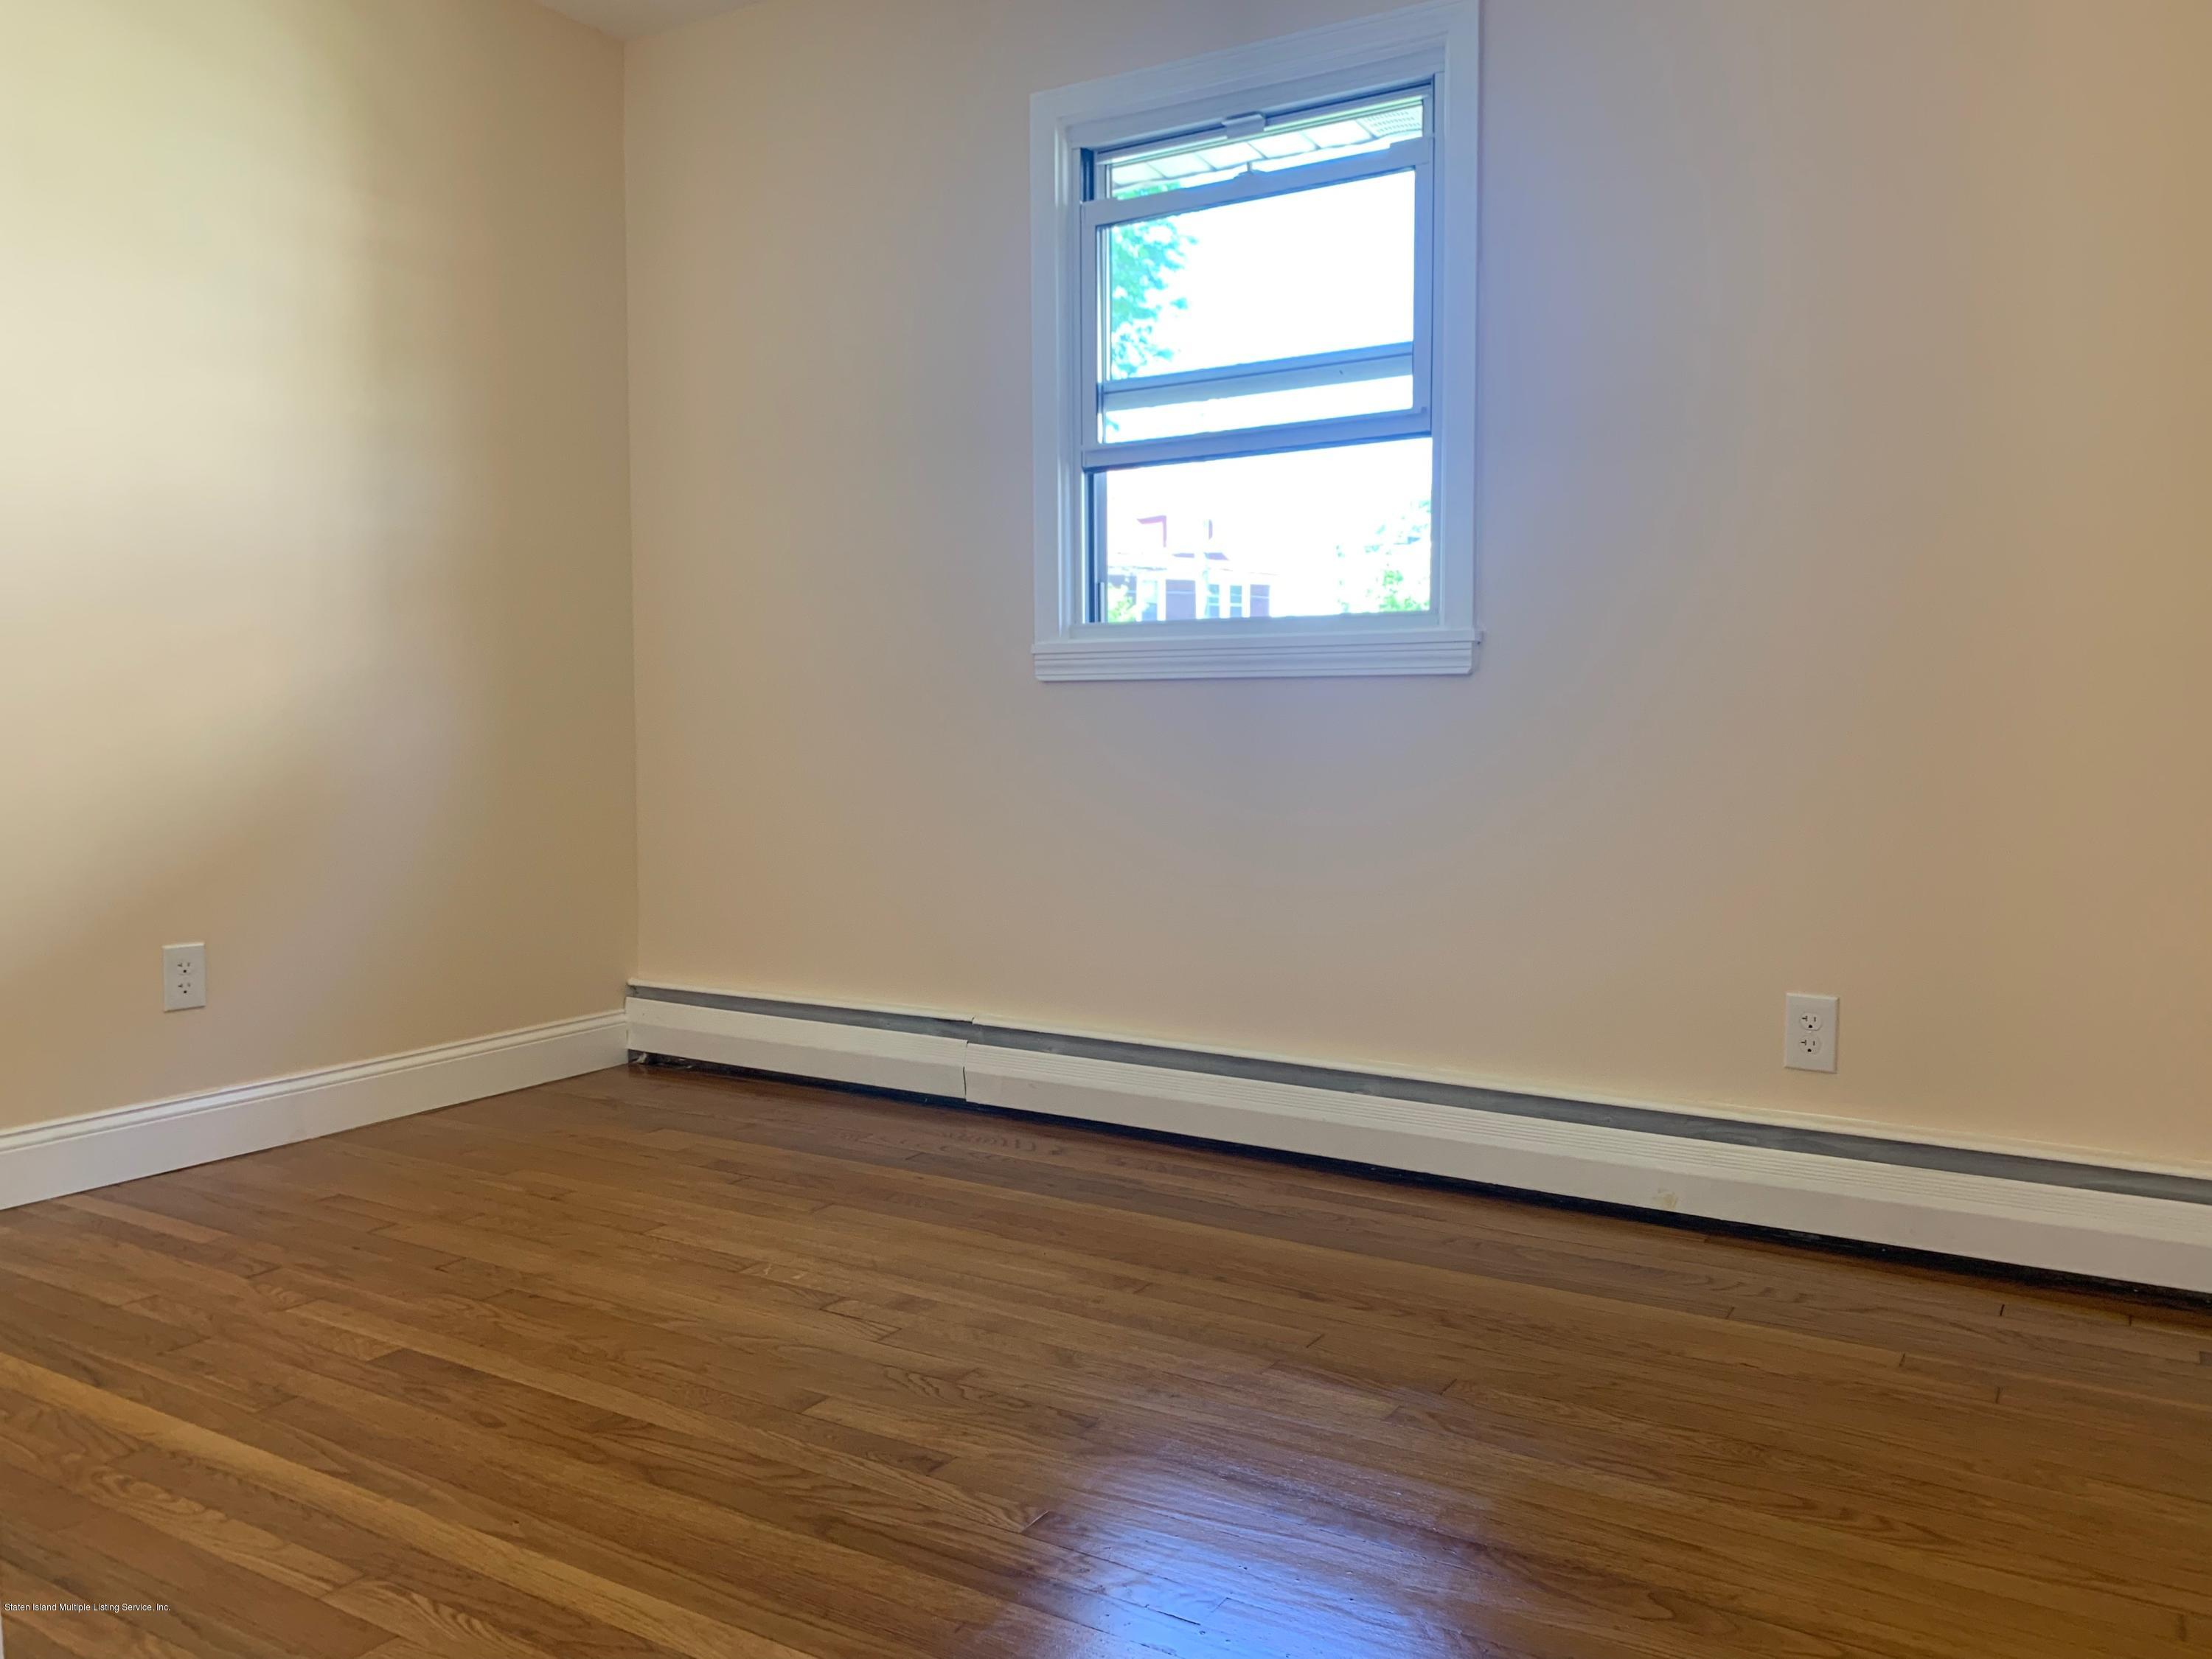 1 480 Vanderbilt Ave Staten Island,New York,10304,United States,3 Bedrooms Bedrooms,6 Rooms Rooms,1 BathroomBathrooms,Res-Rental,Vanderbilt Ave,1129269